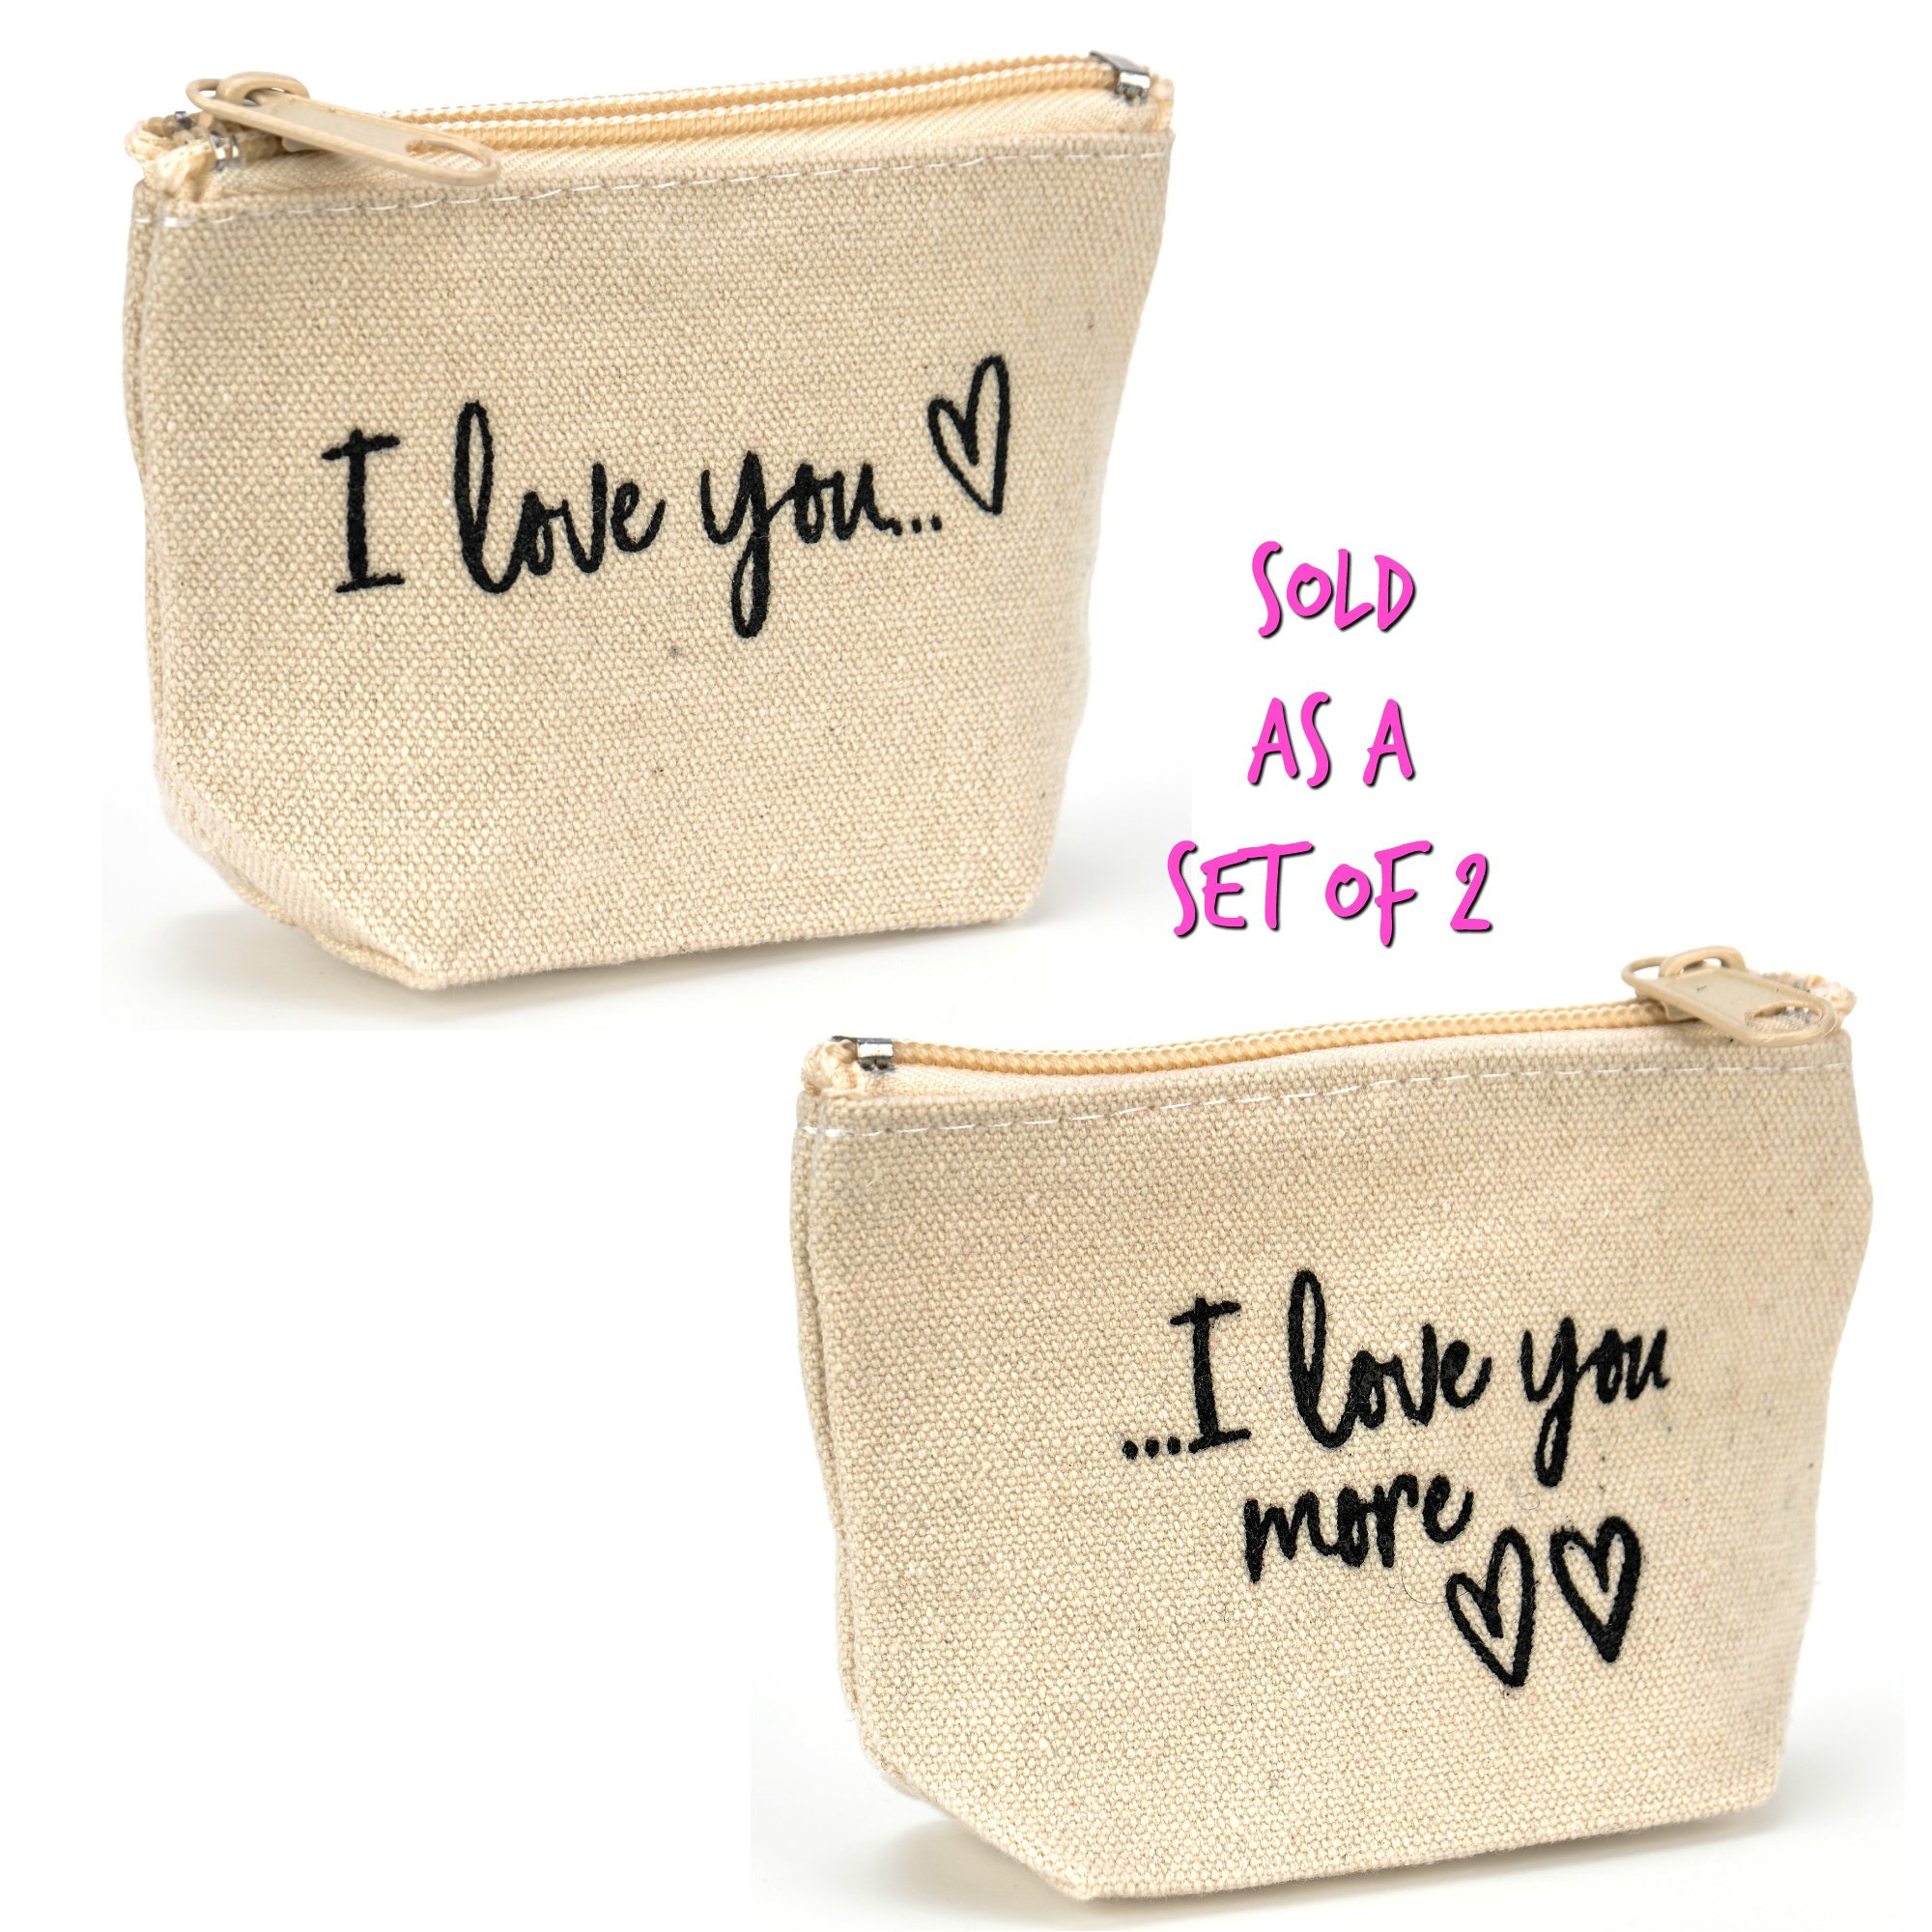 Friend Gift Coin Purse Set - I Love You & I Love You More - Couple Gift - Set of 2 Bags, 1 of Each Design